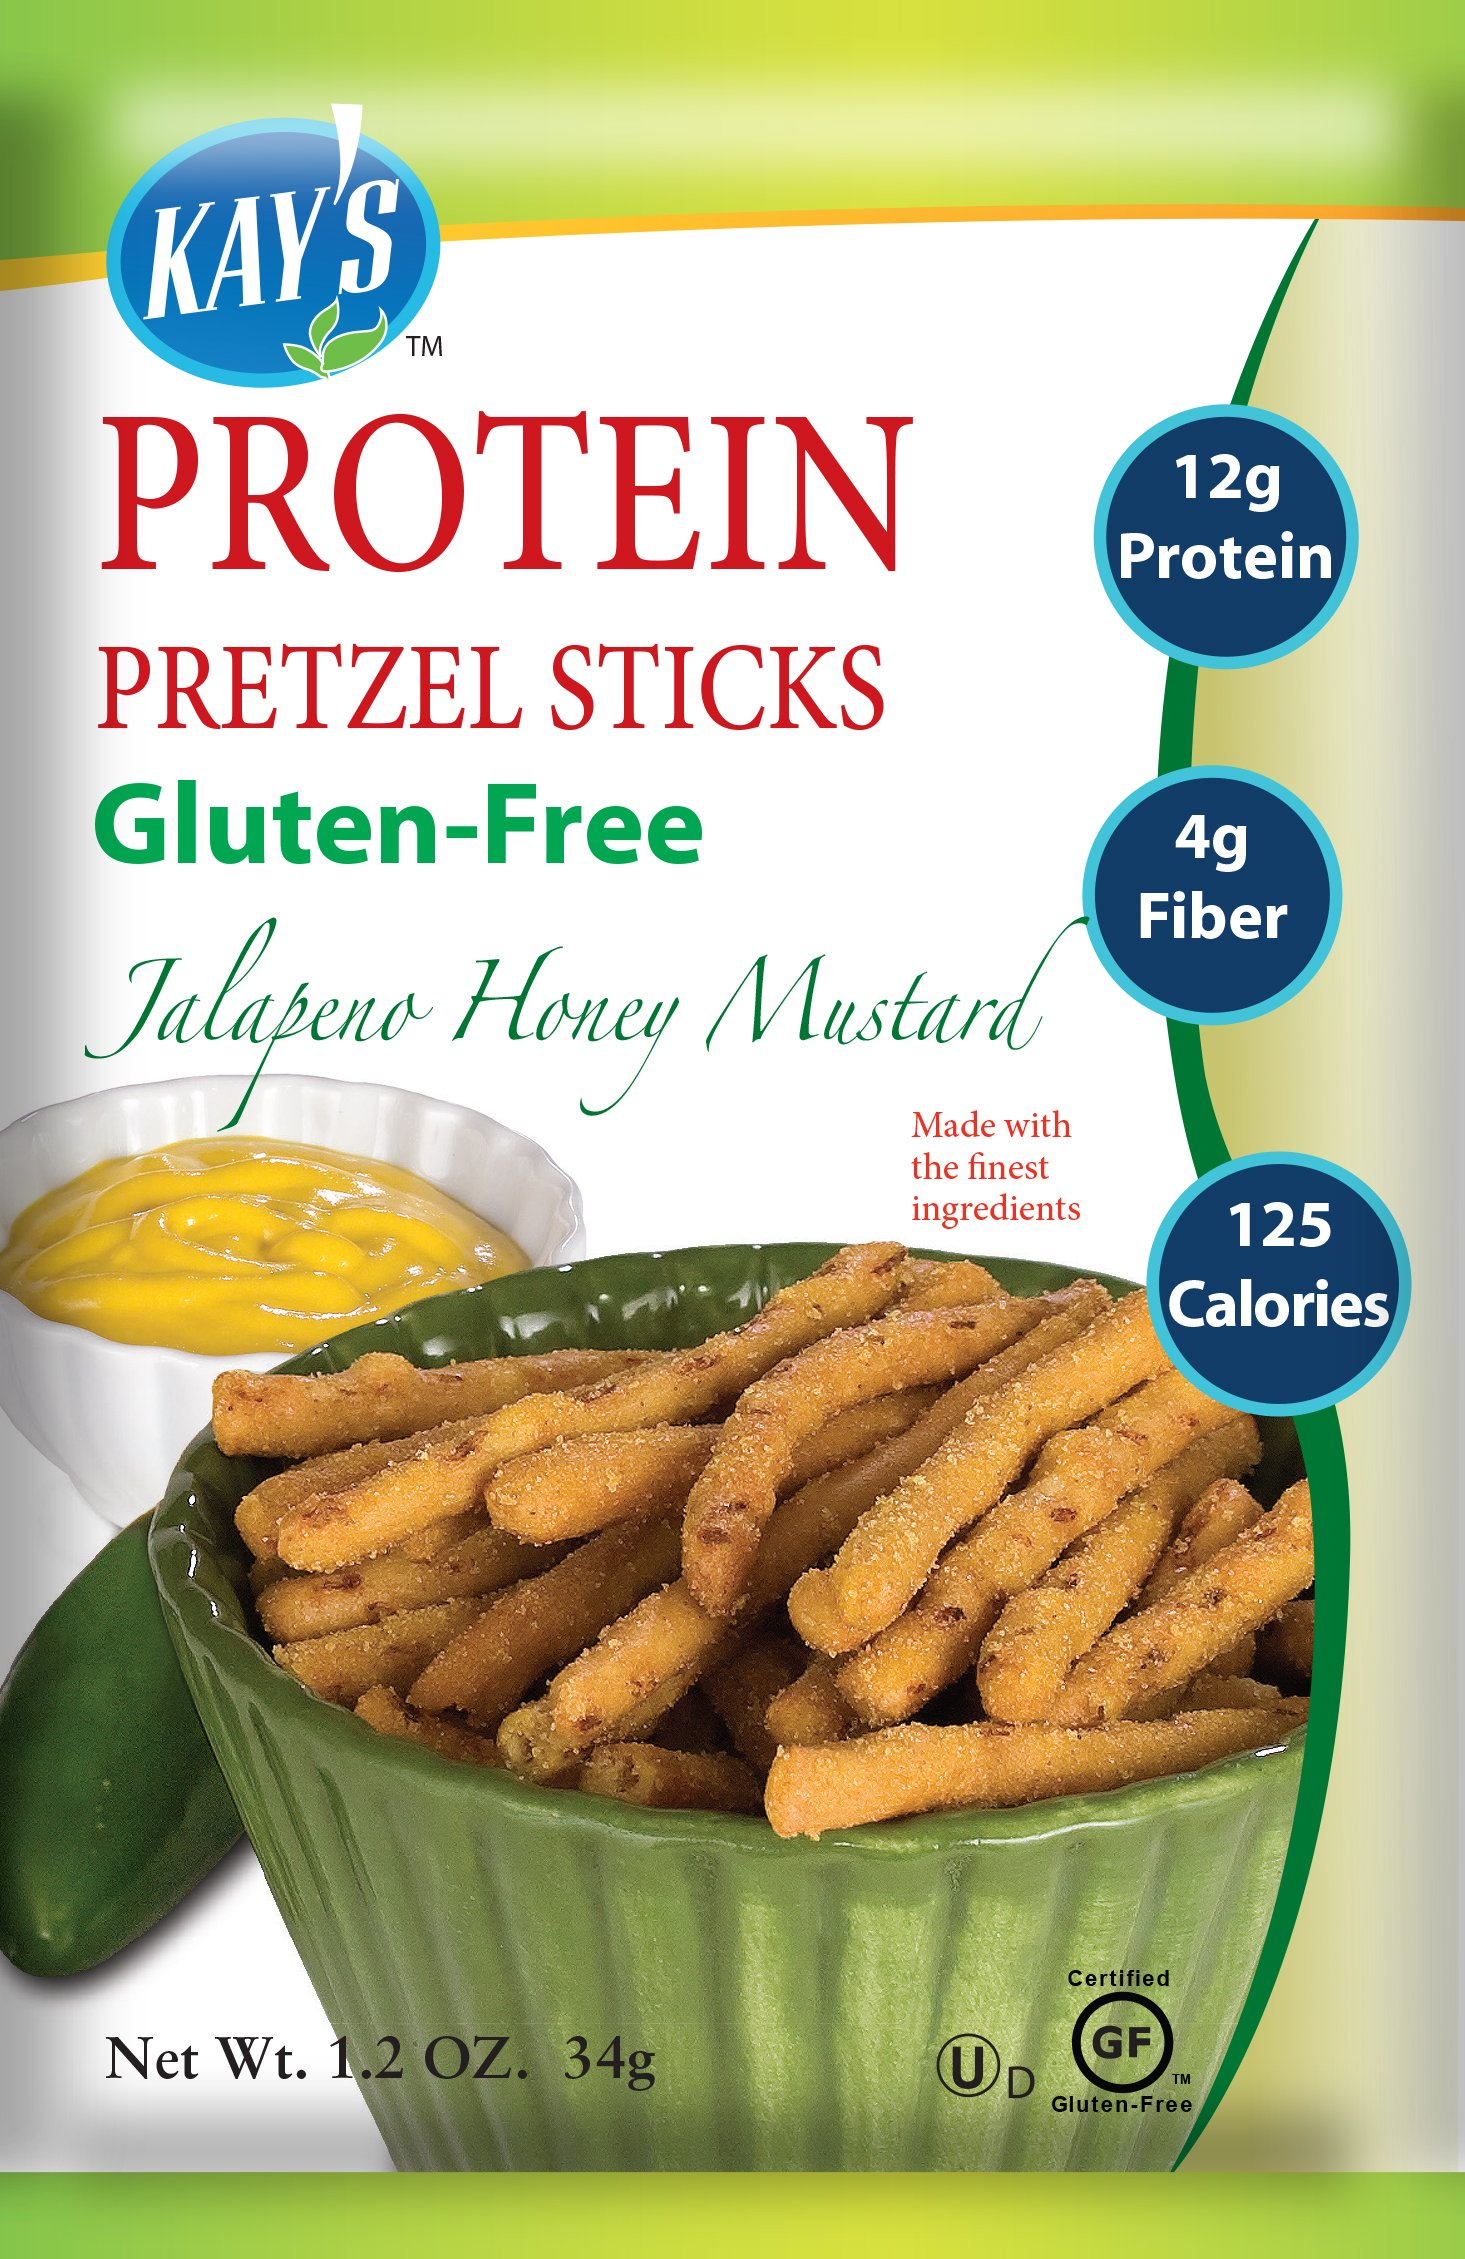 Kay's Naturals Protein Pretzels, Jalapeno Honey Mustard, Gluten-Free, 1.2 Ounce (Pack of 6)